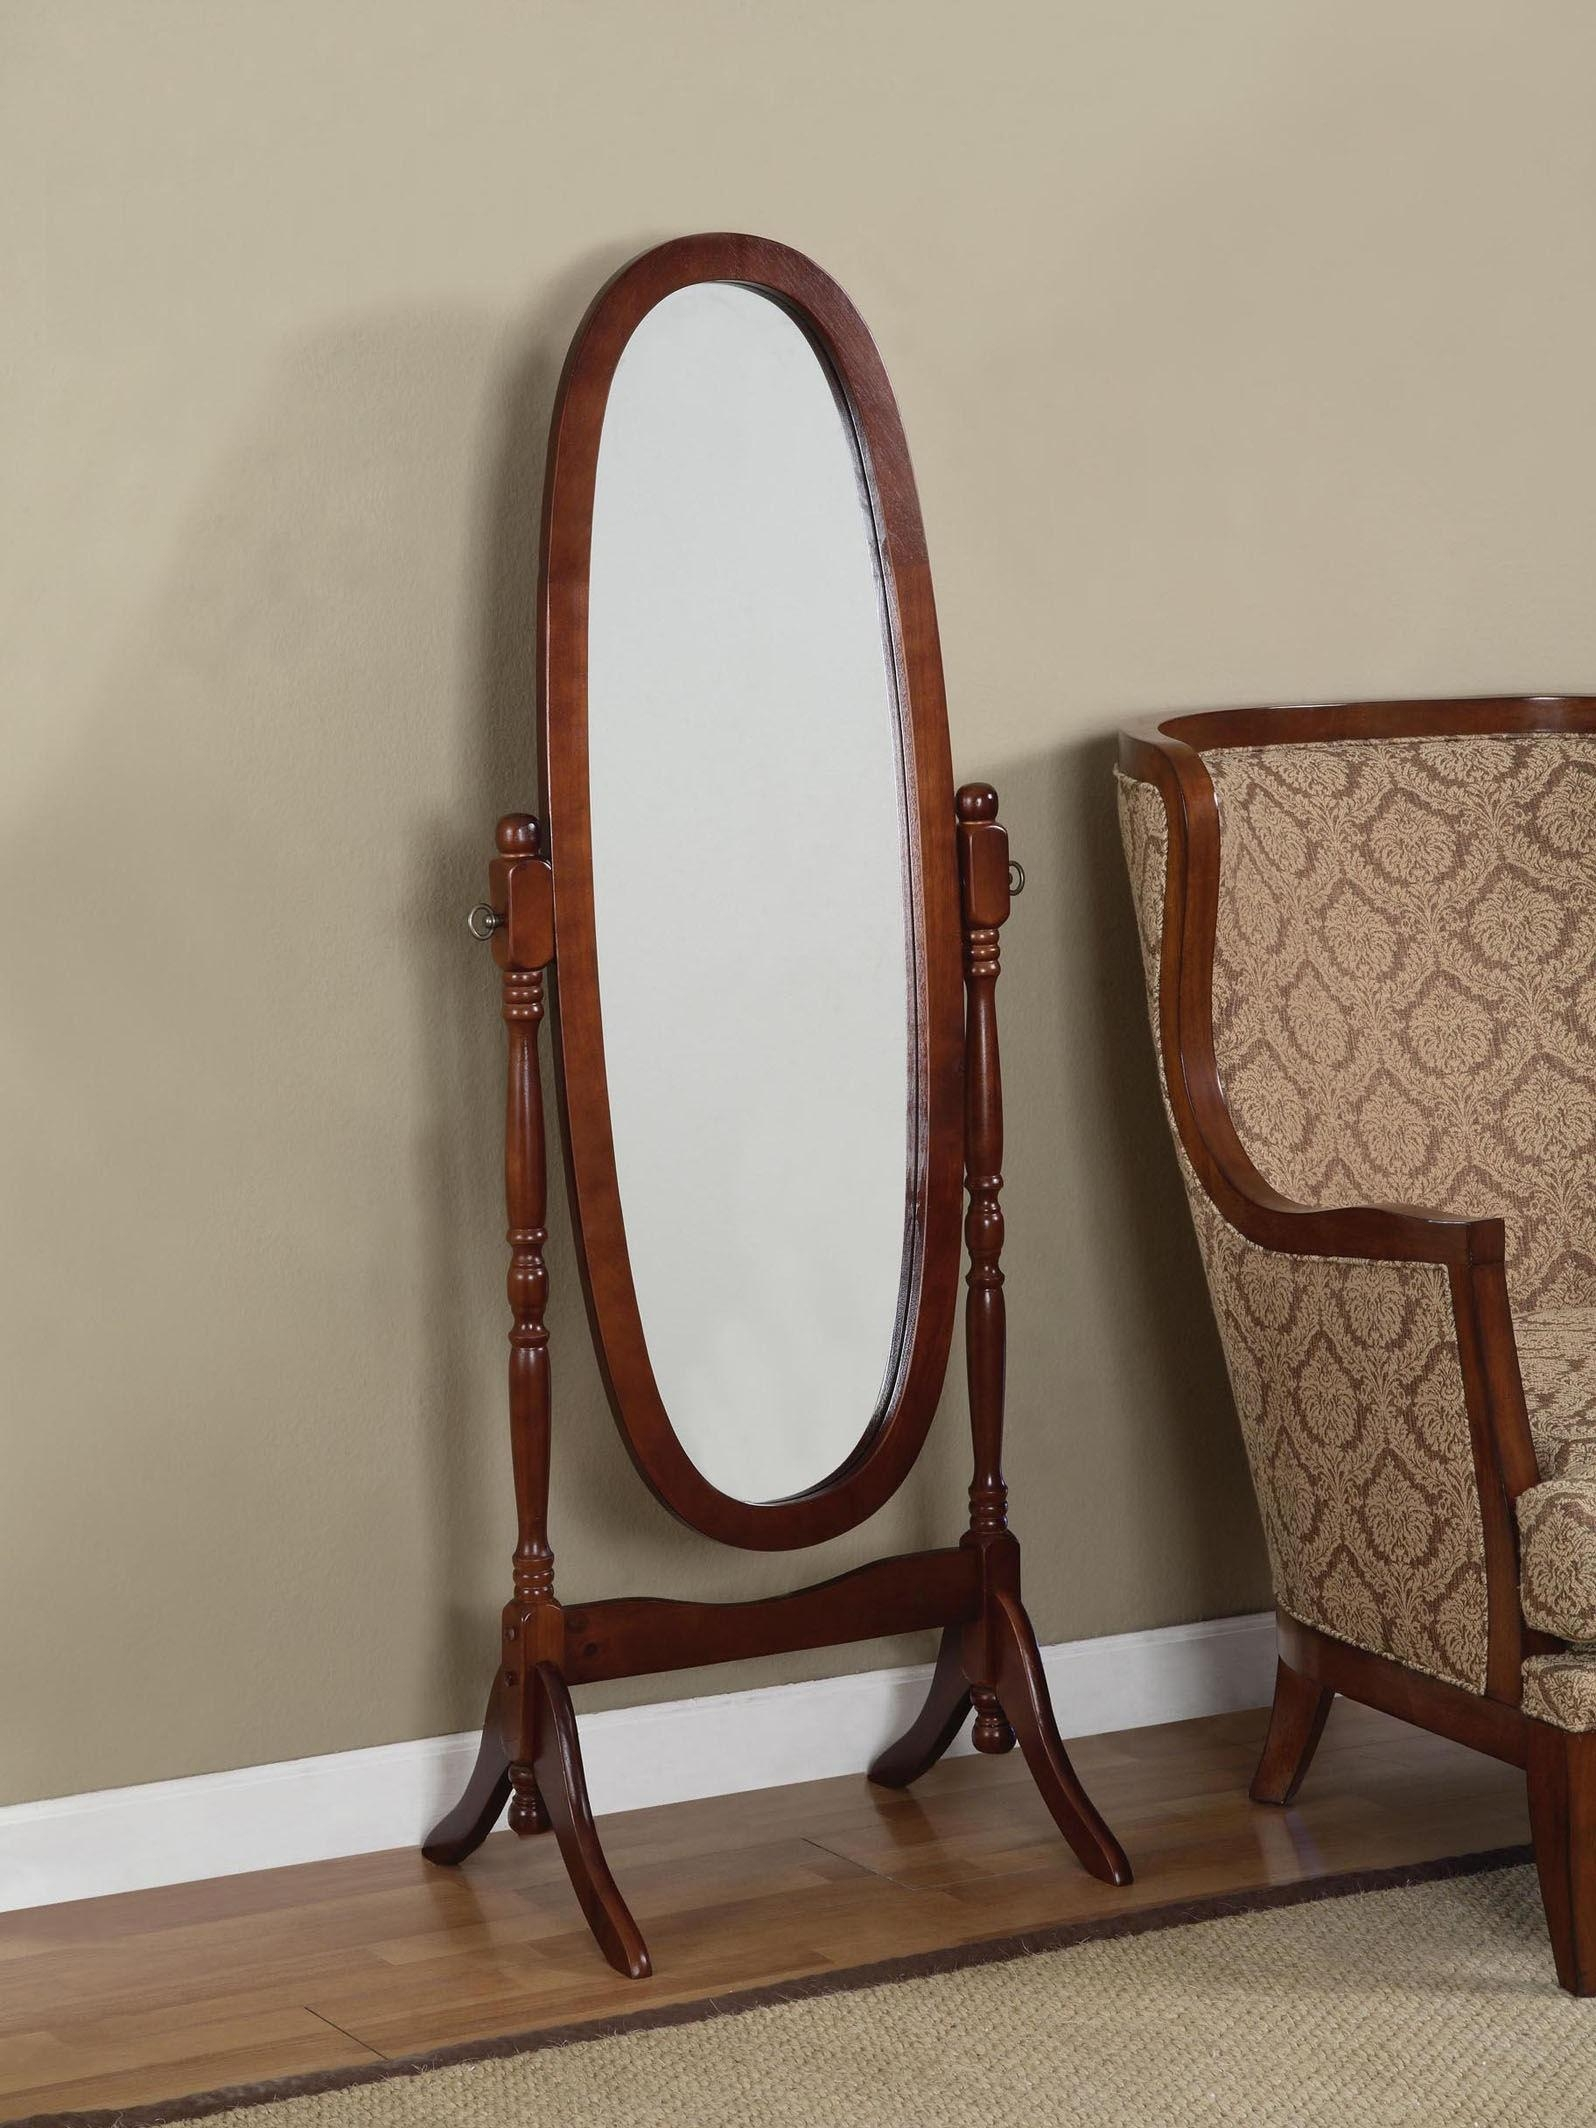 Bedroom Furniture : Unique Mirrors Full Length Mirror Small For Small Free Standing Mirrors (Image 5 of 20)